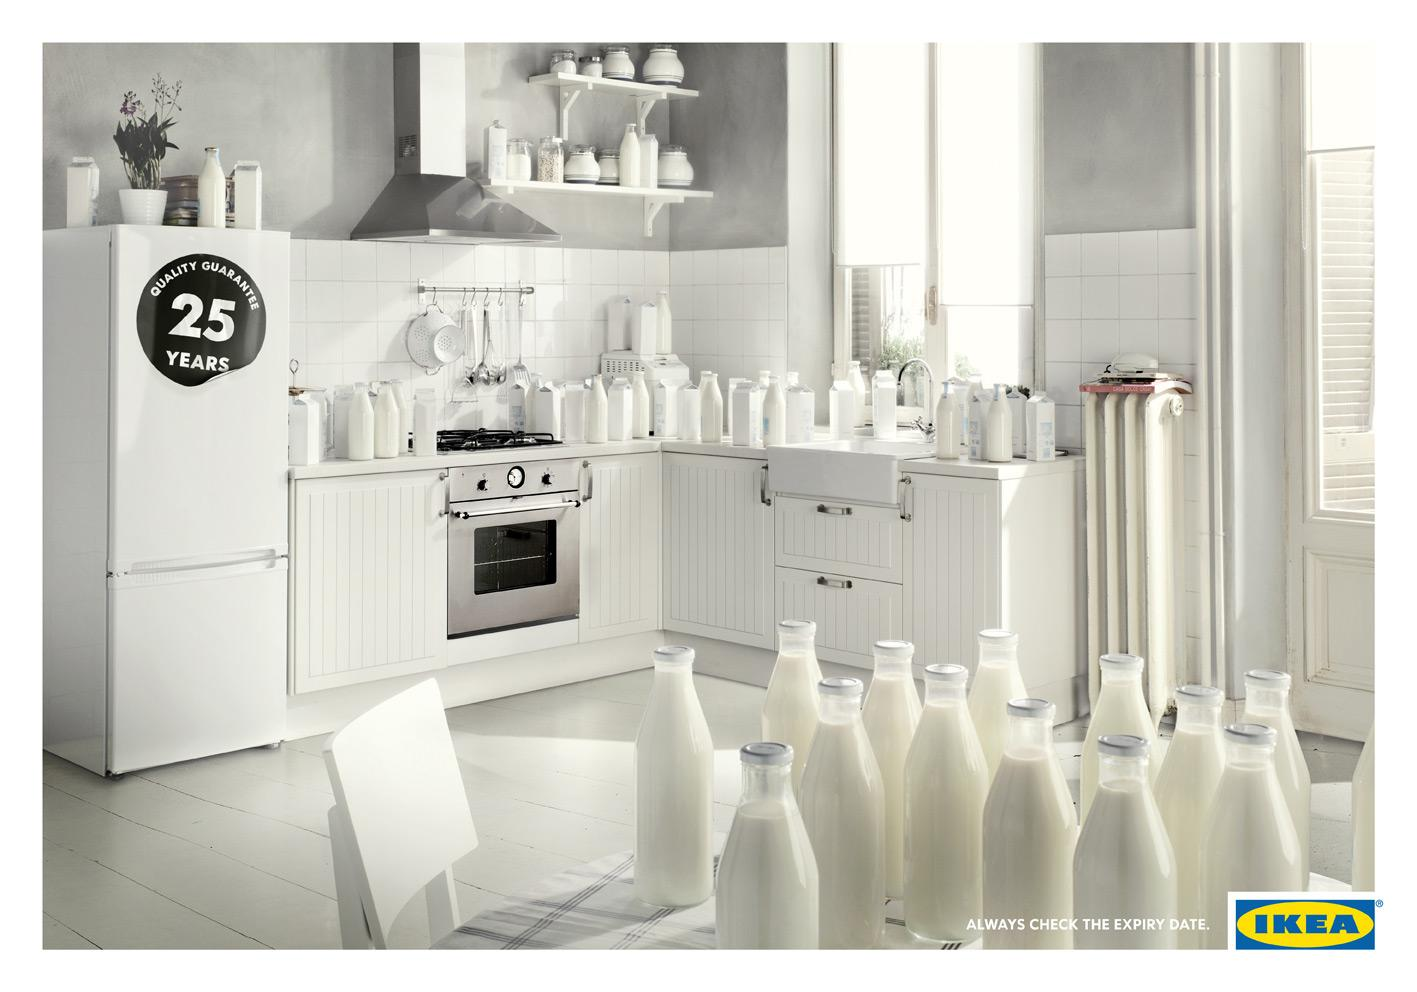 IKEA:  Always check the expiry date